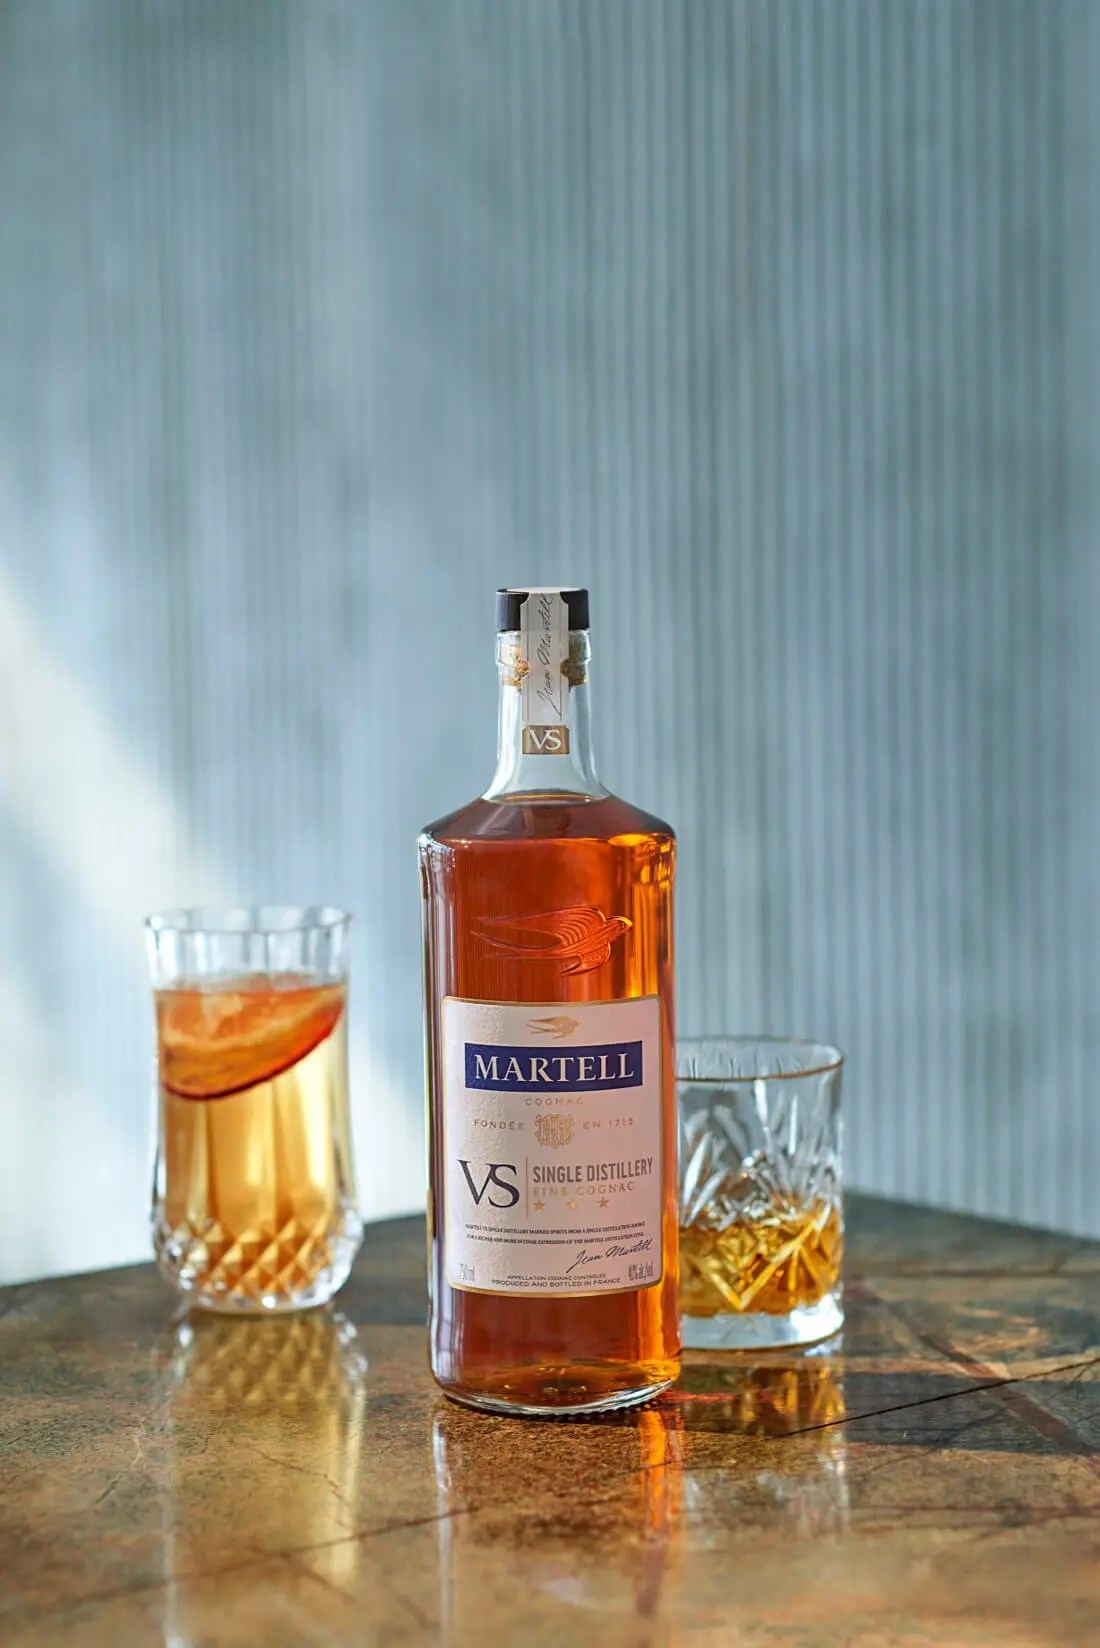 martell-vs-single-distillery-digital-picture-raw-visual-8